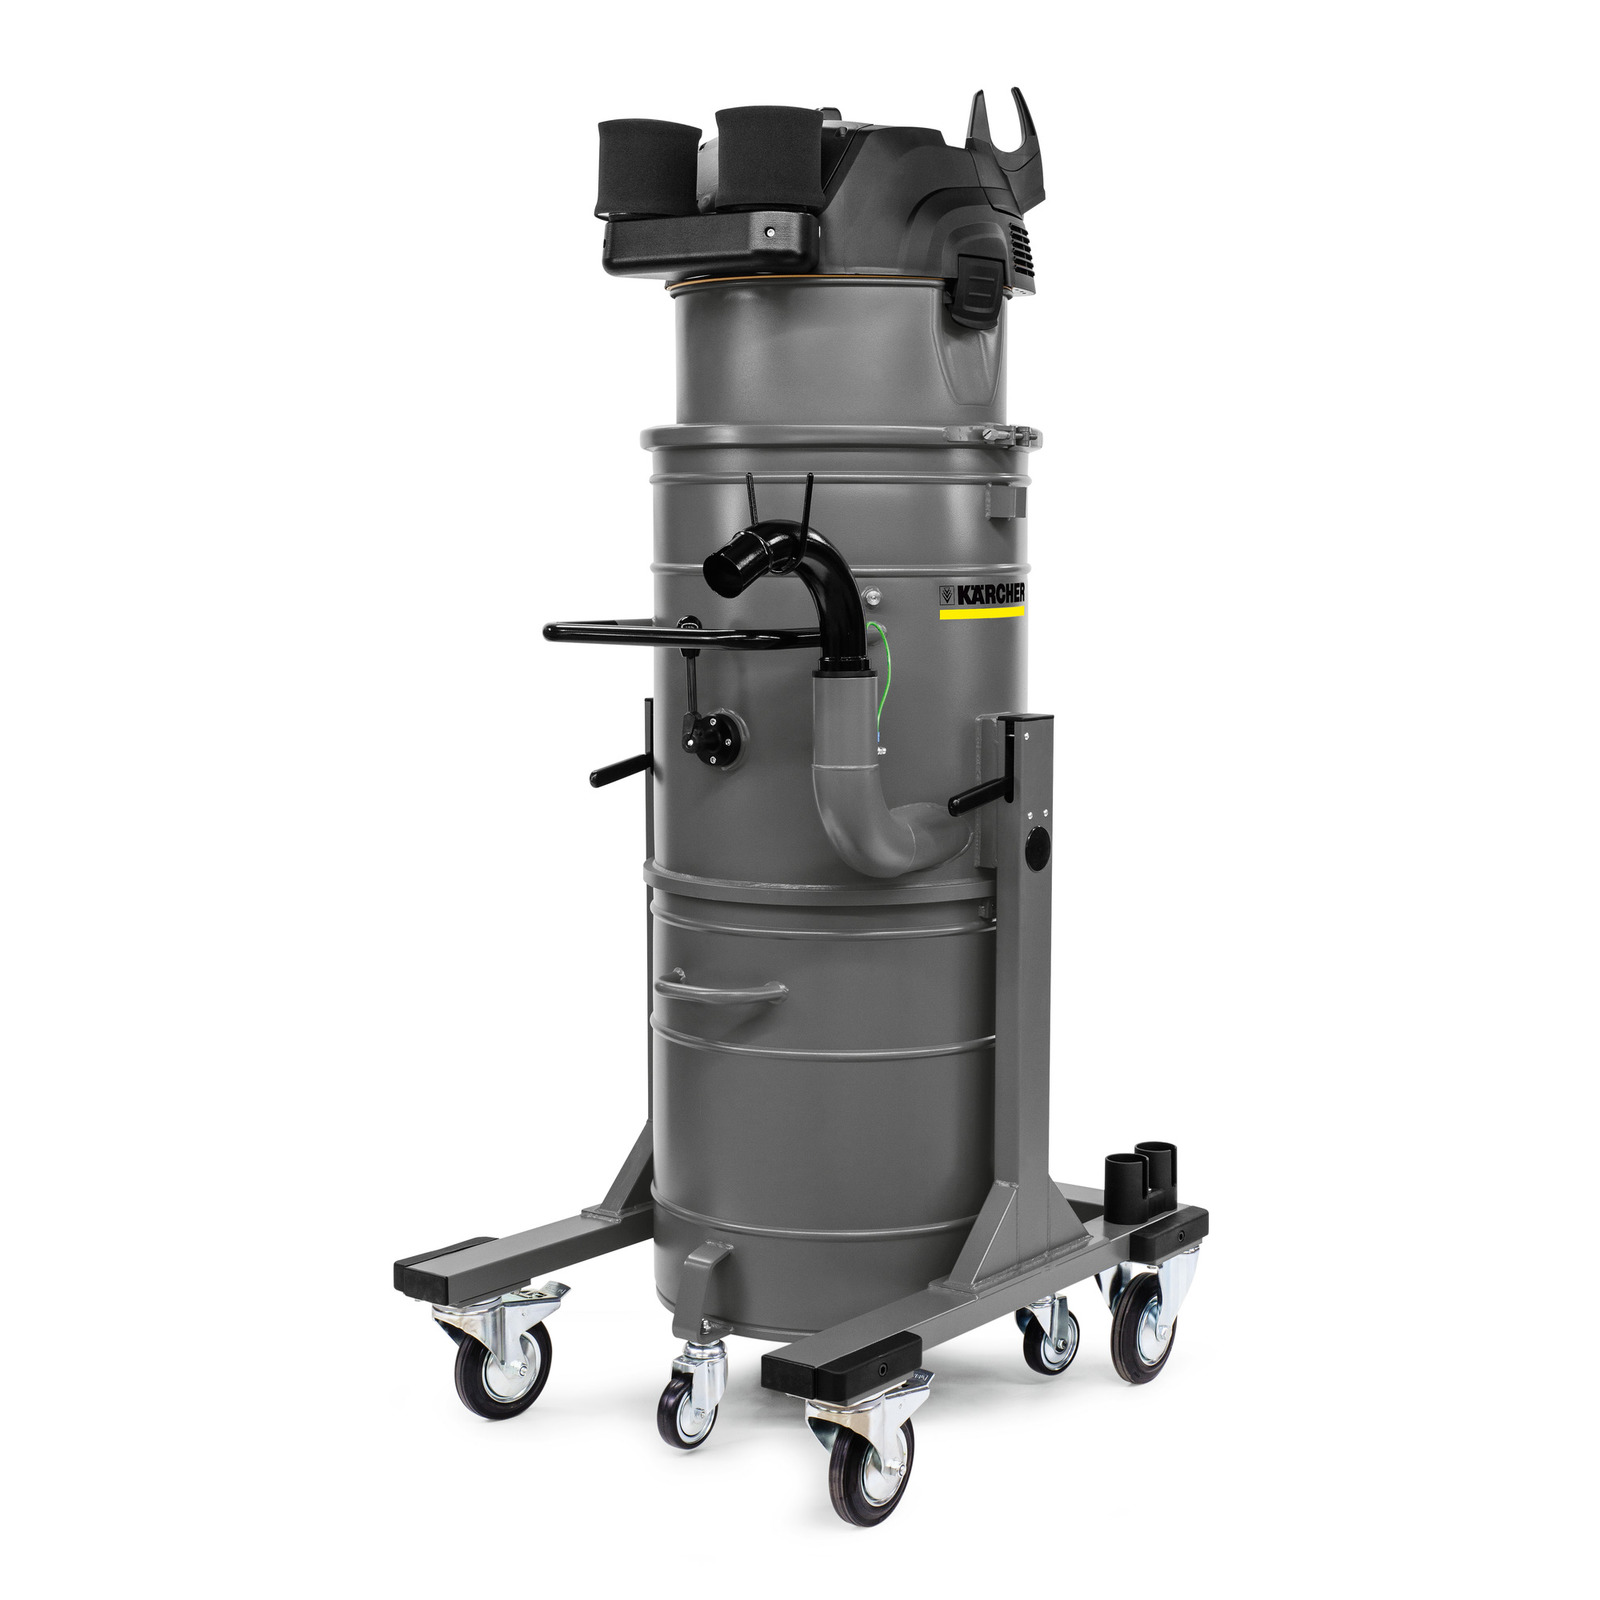 IVM 50/24-2 Industrial Vacuum Cleaner